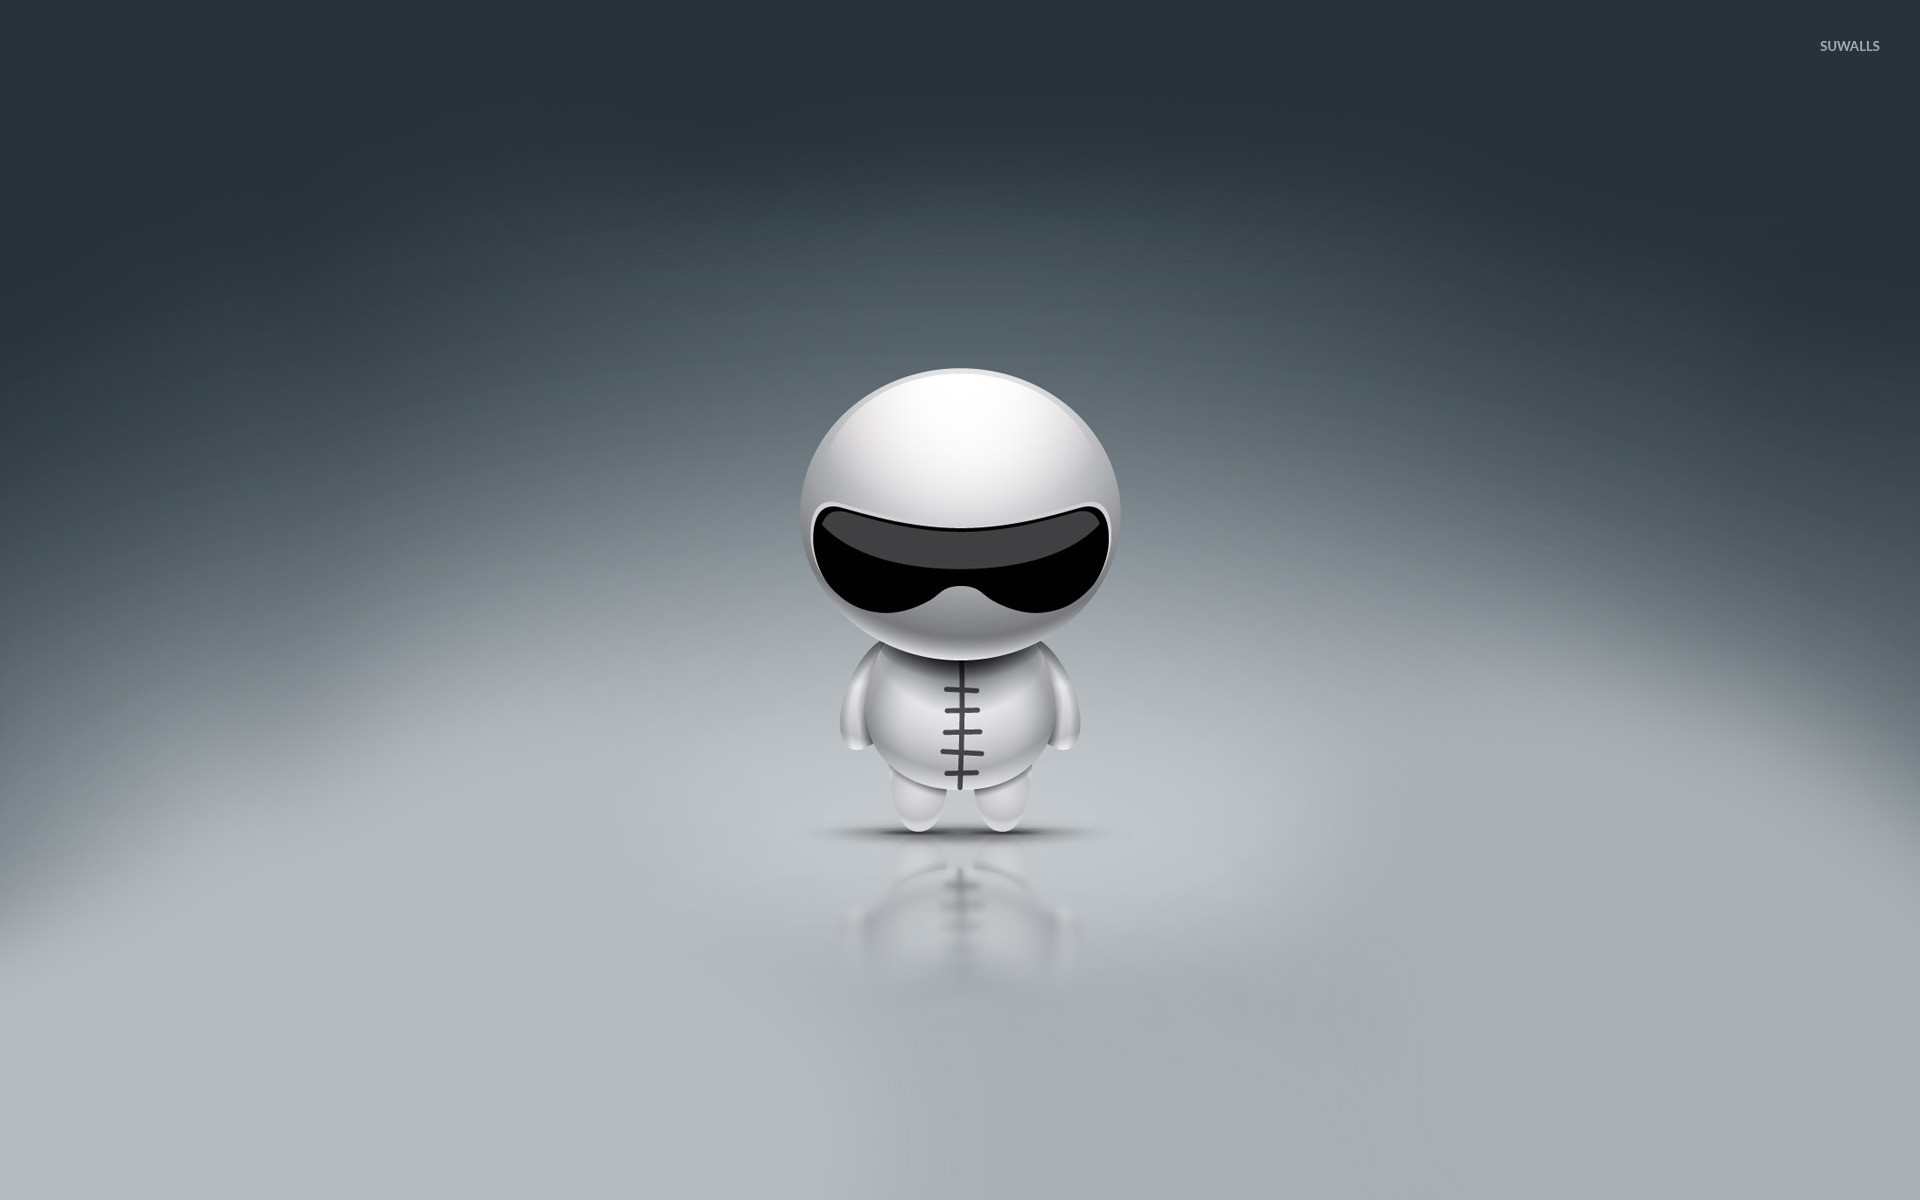 1920x1200 Stig emoticon wallpaper